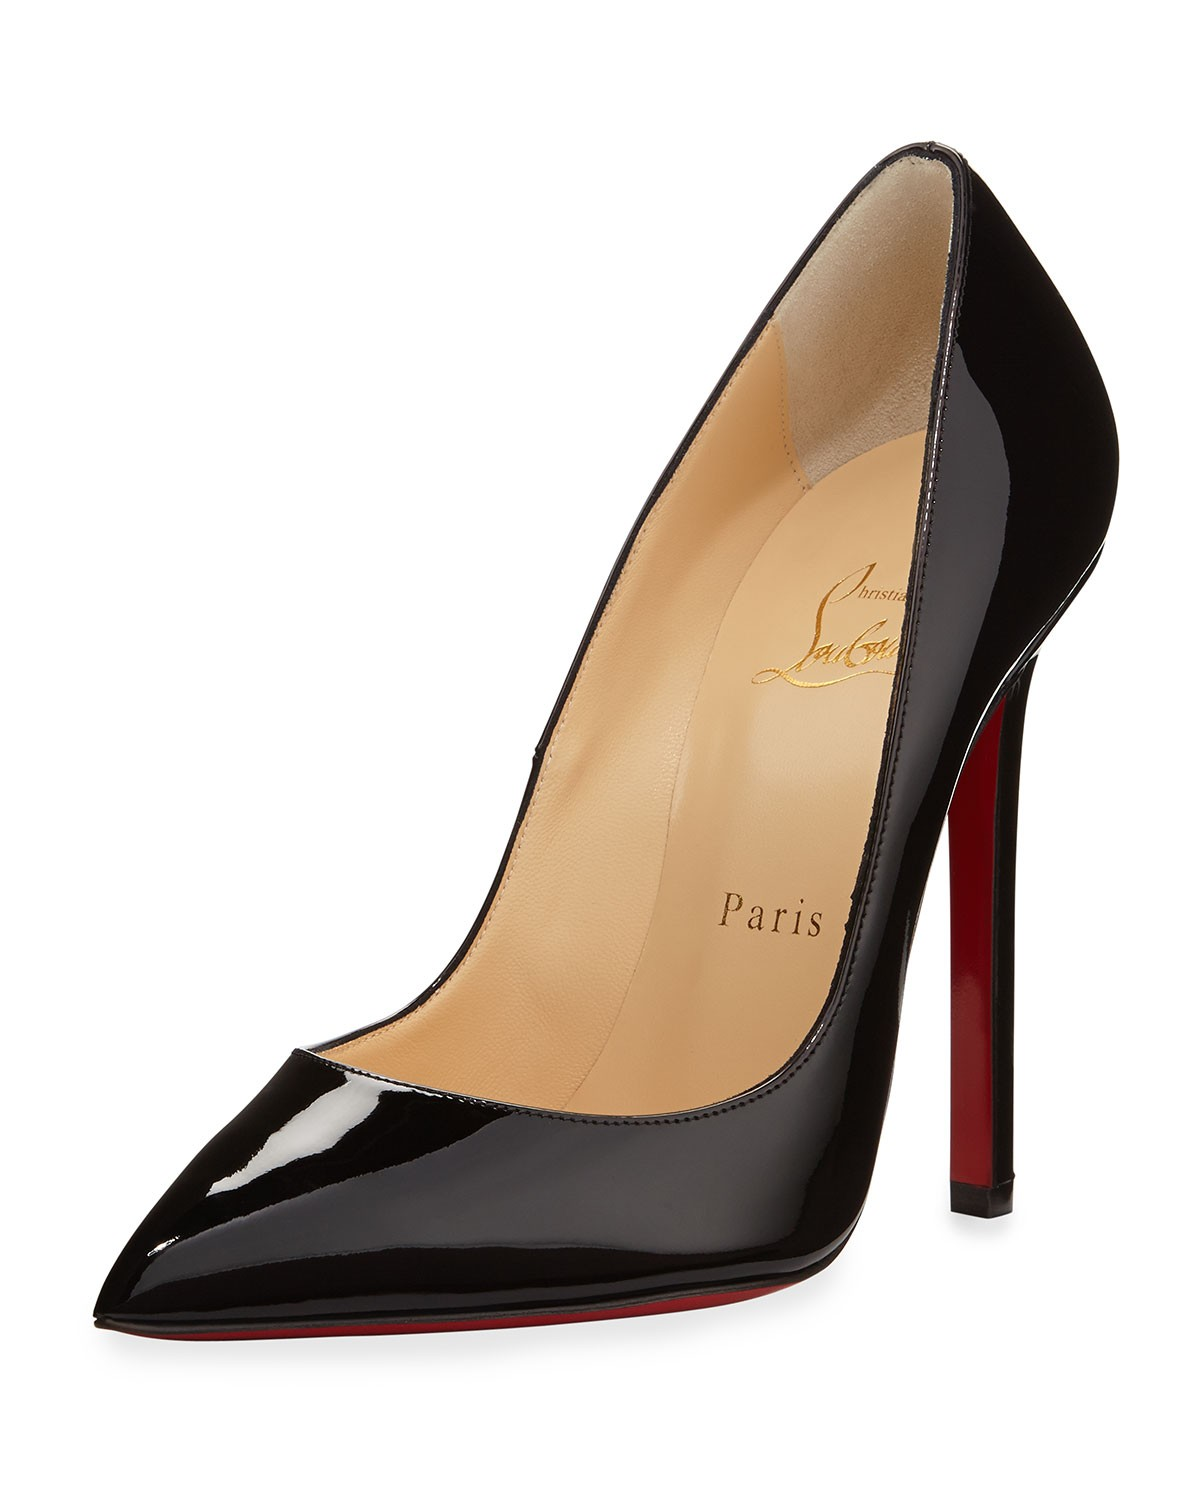 buy online 582cb 03ea5 My Louboutins | The Man. The Shoes. The Red Sole.